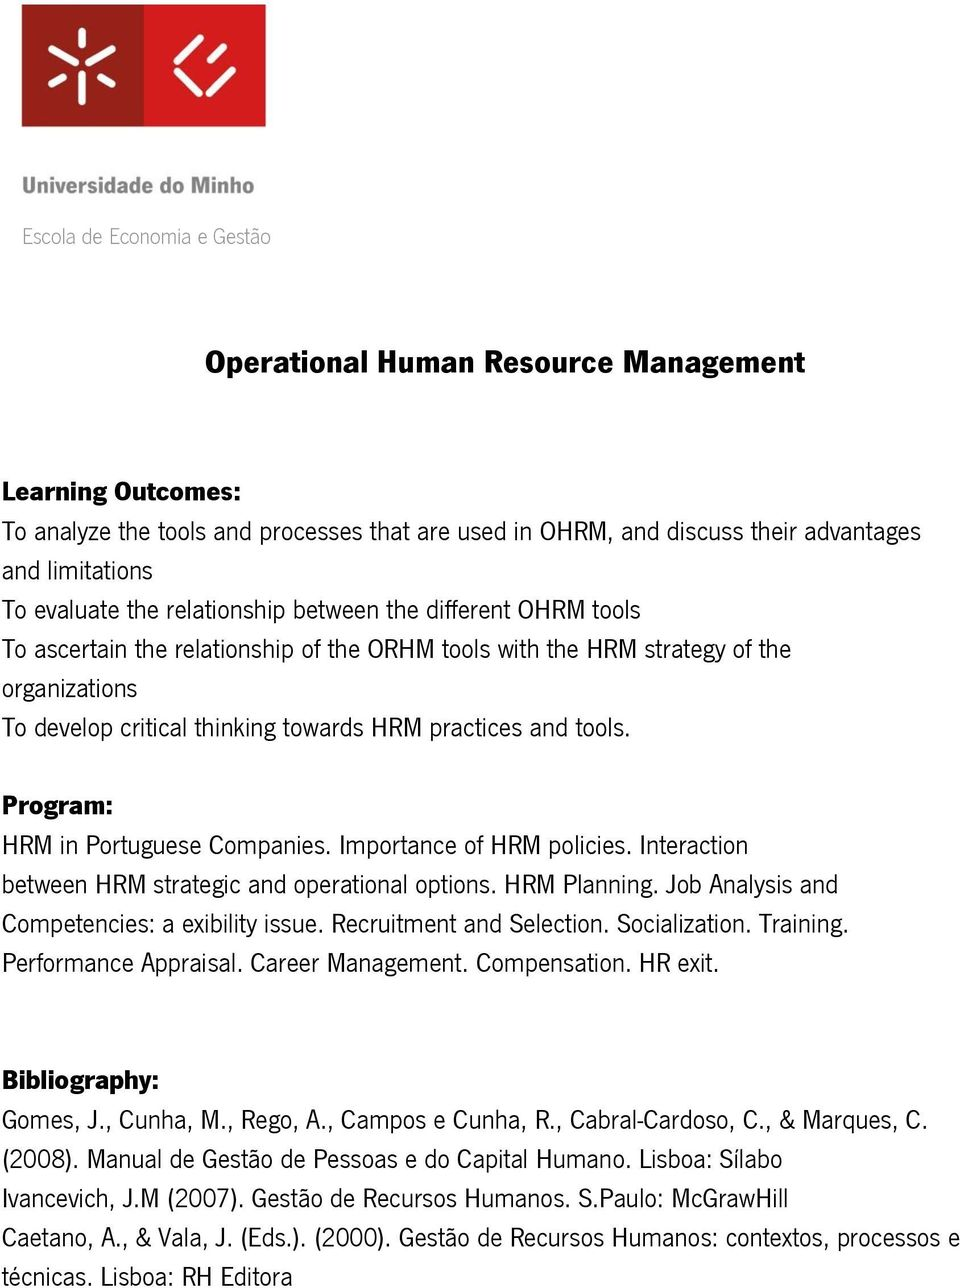 Importance of HRM policies. Interaction between HRM strategic and operational options. HRM Planning. Job Analysis and Competencies: a exibility issue. Recruitment and Selection. Socialization.